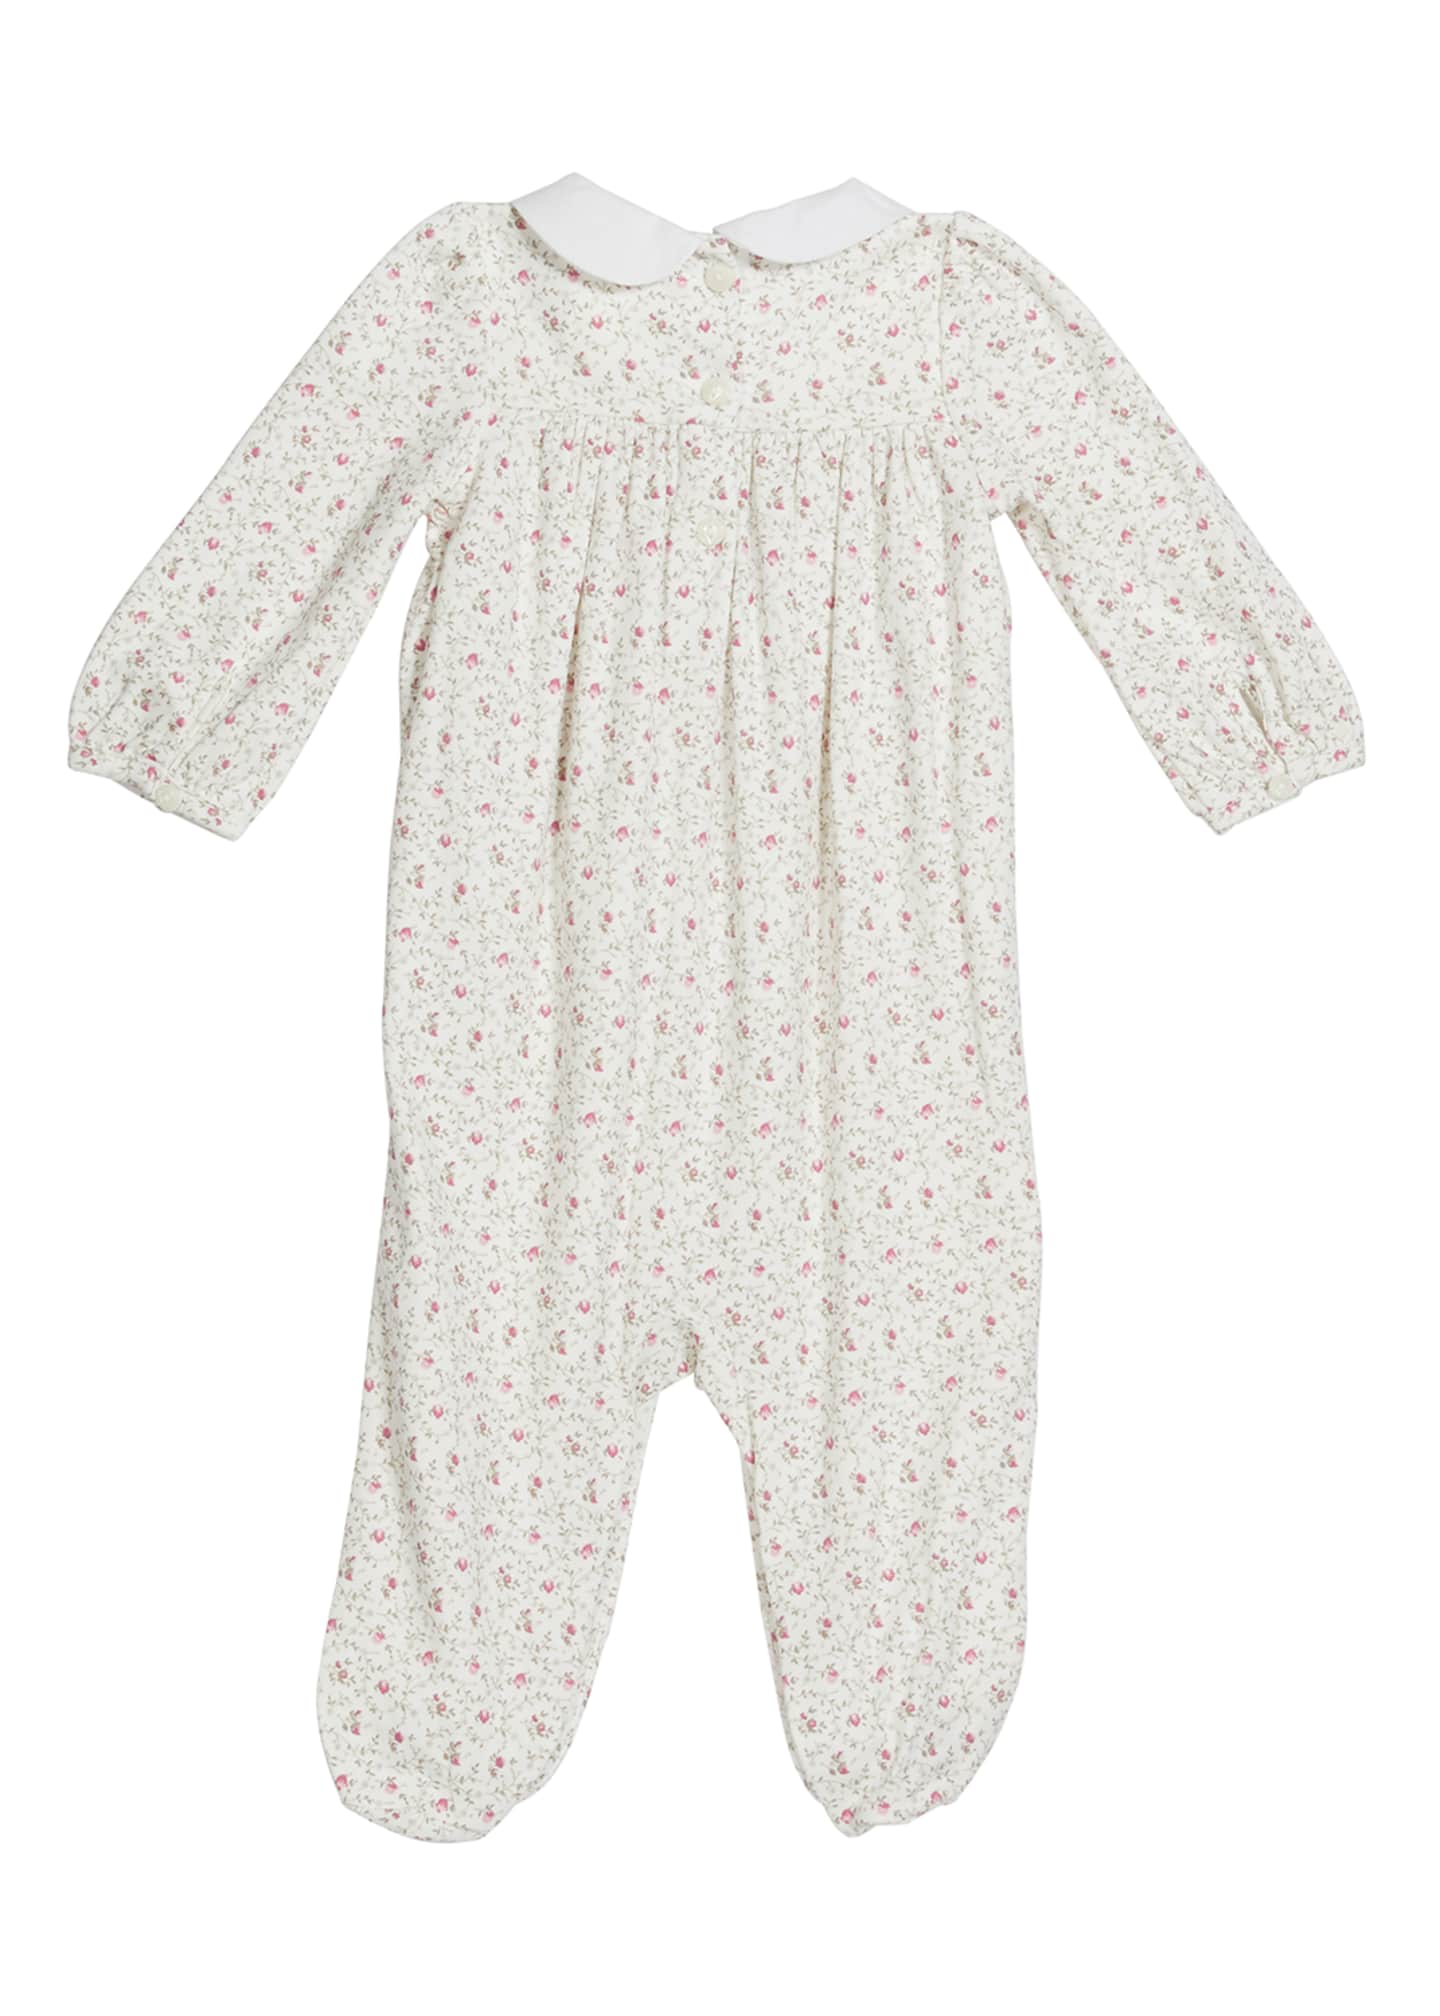 Image 2 of 2: Girl's Floral Shirred Footie Playsuit, Size 0-9M